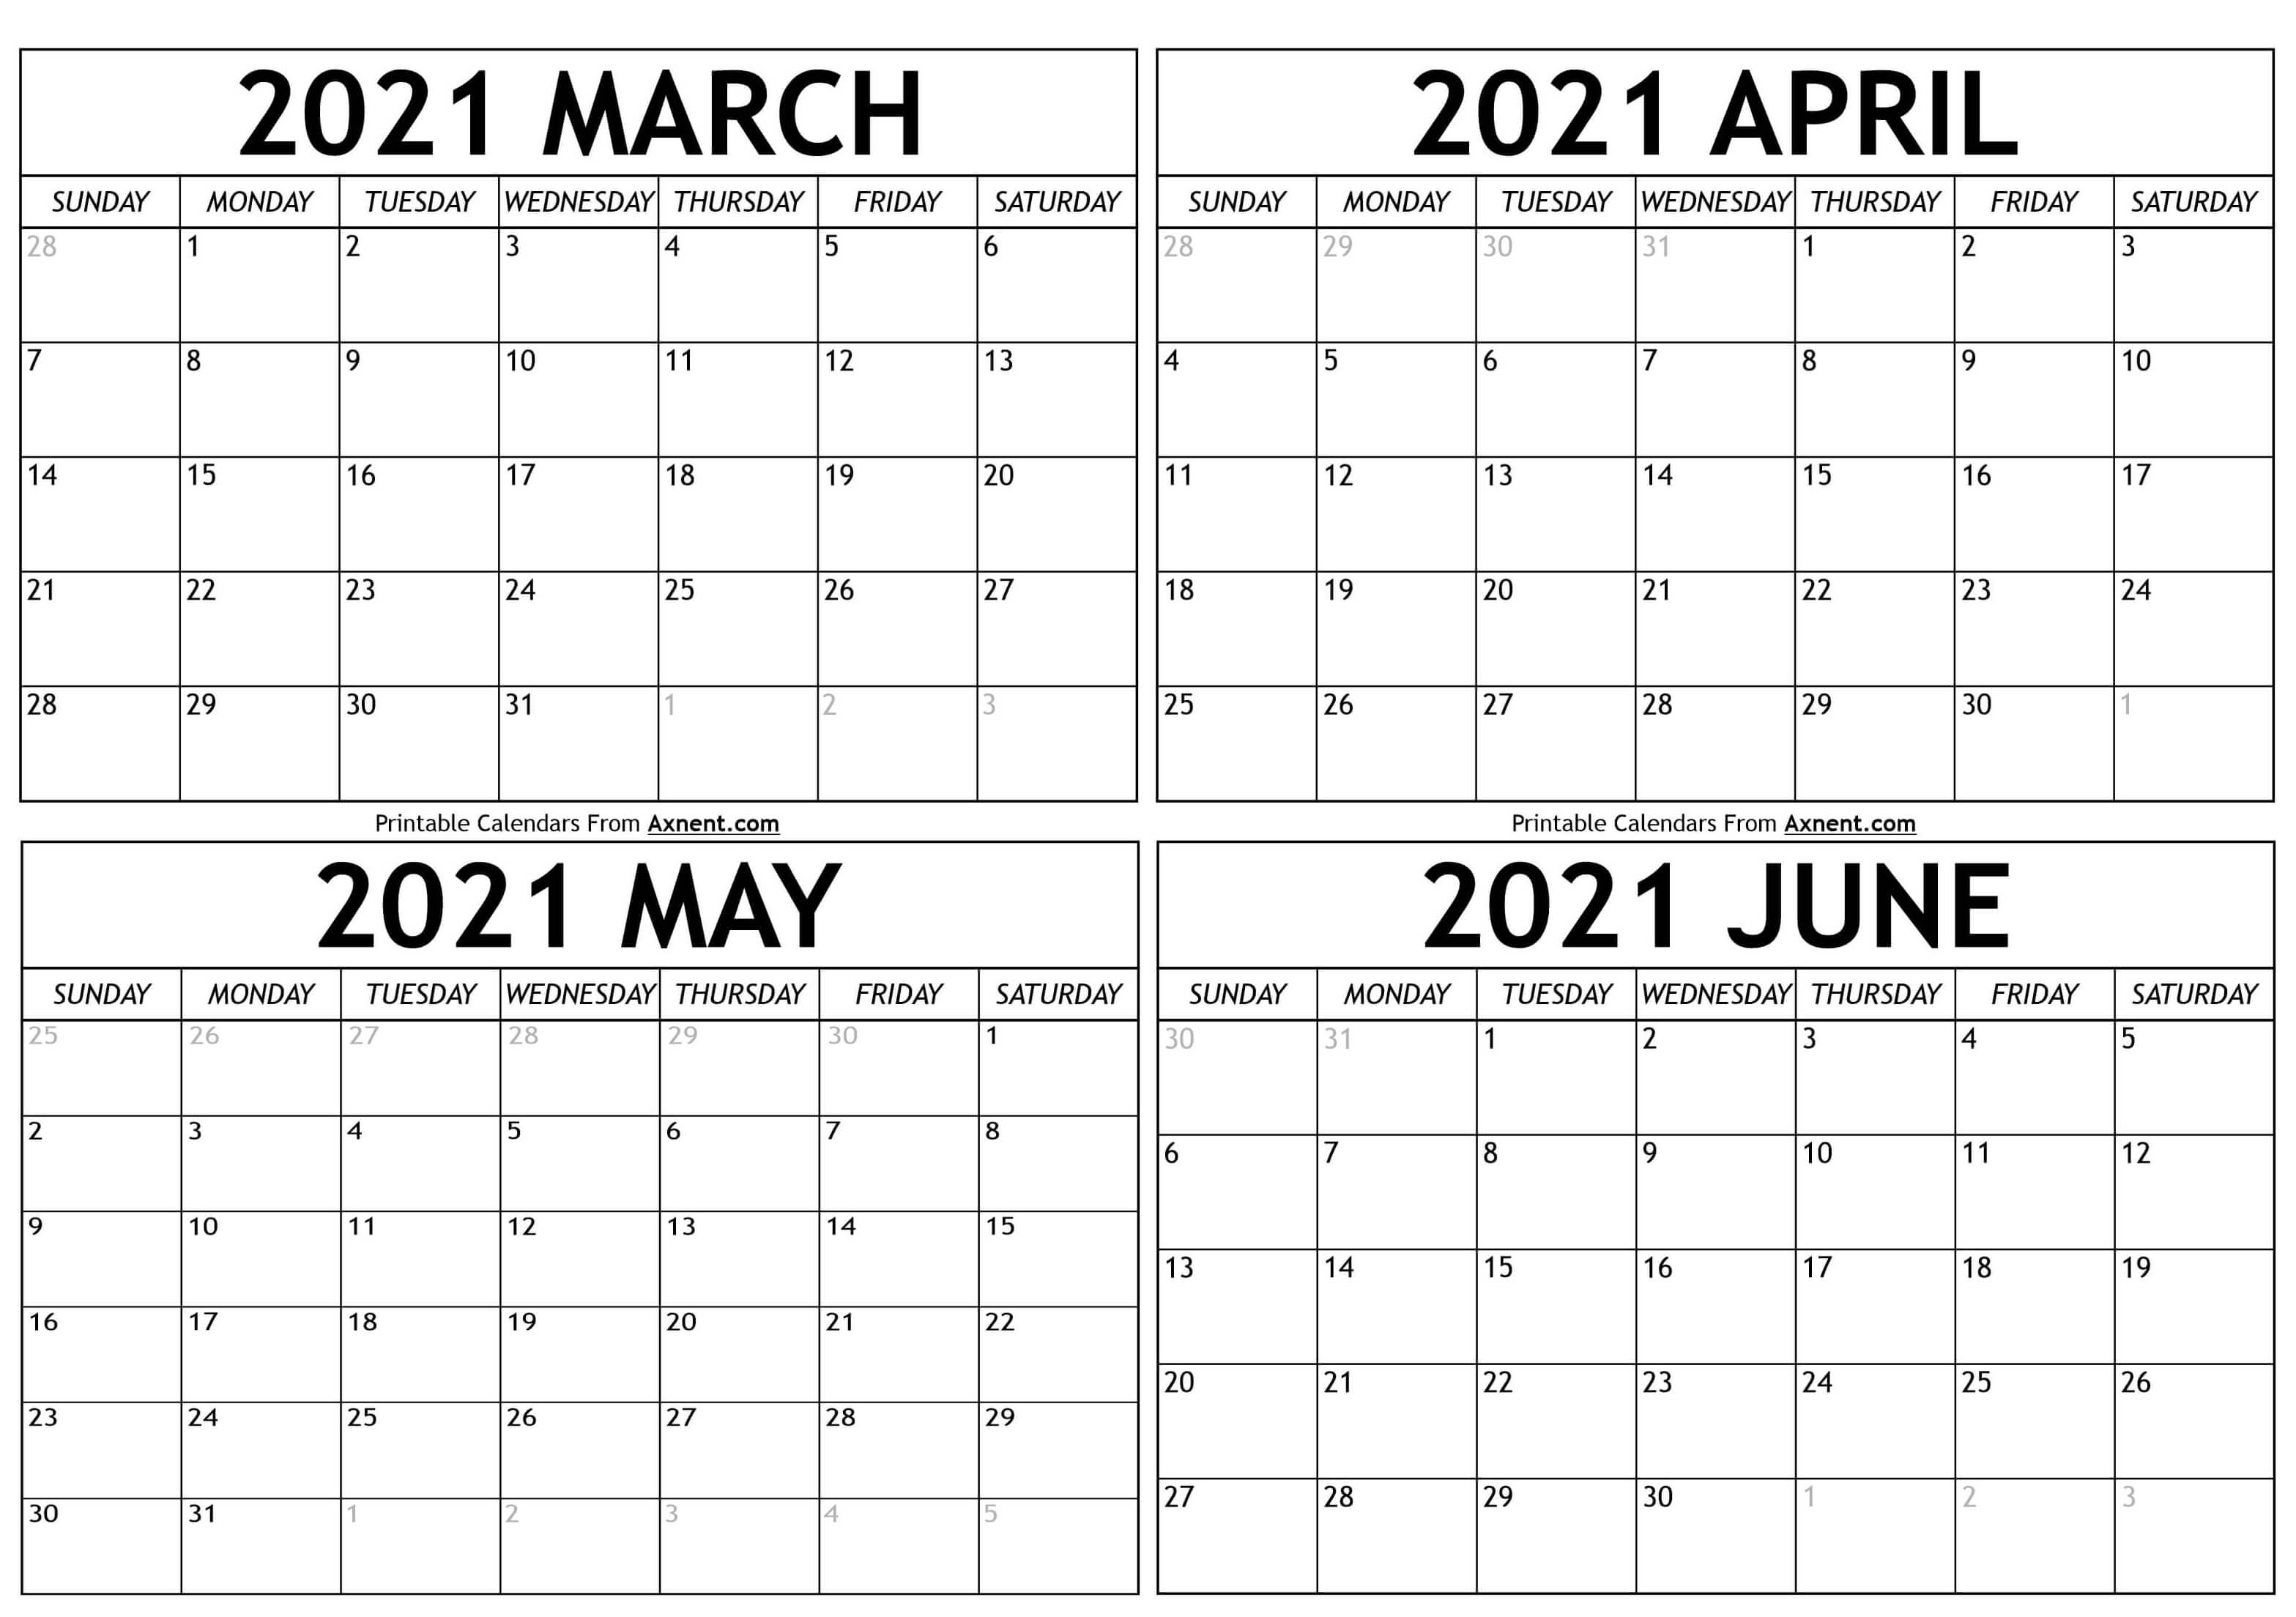 Calendar Of May And June 2021 March To June 2021 Calendar Templates   Time Management Tools